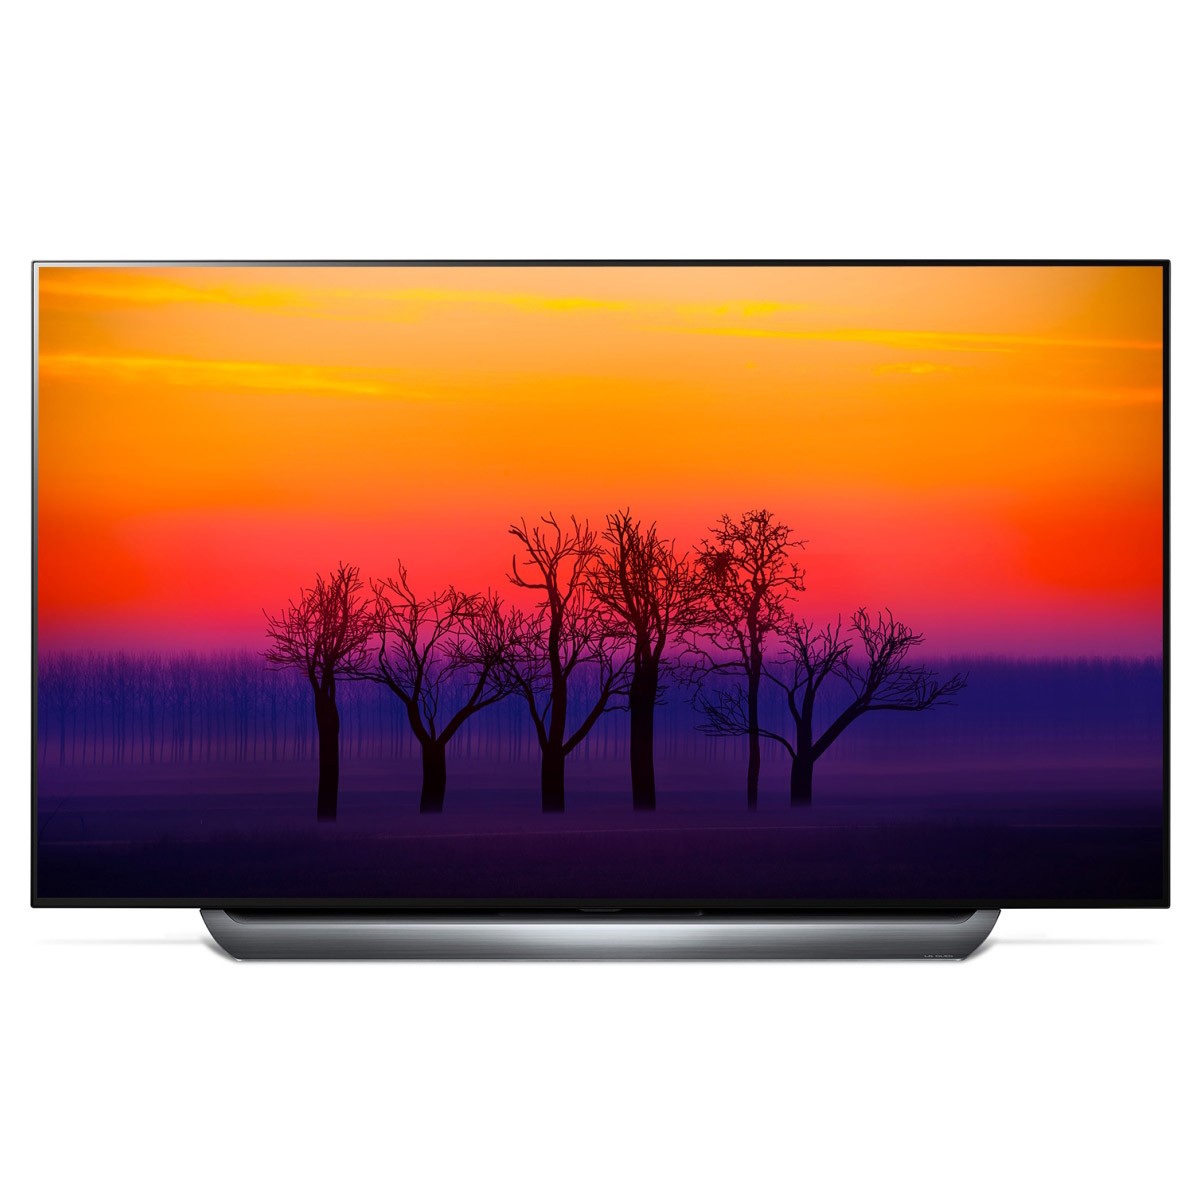 "TV LG OLED55C8 Téléviseur OLED 4K 55"" (140 cm) 16/9 - 3840 x 2160 pixels - Ultra HD 2160p - HDR - Wi-Fi - Bluetooth - Dolby Atmos (dalle native 100 Hz)"